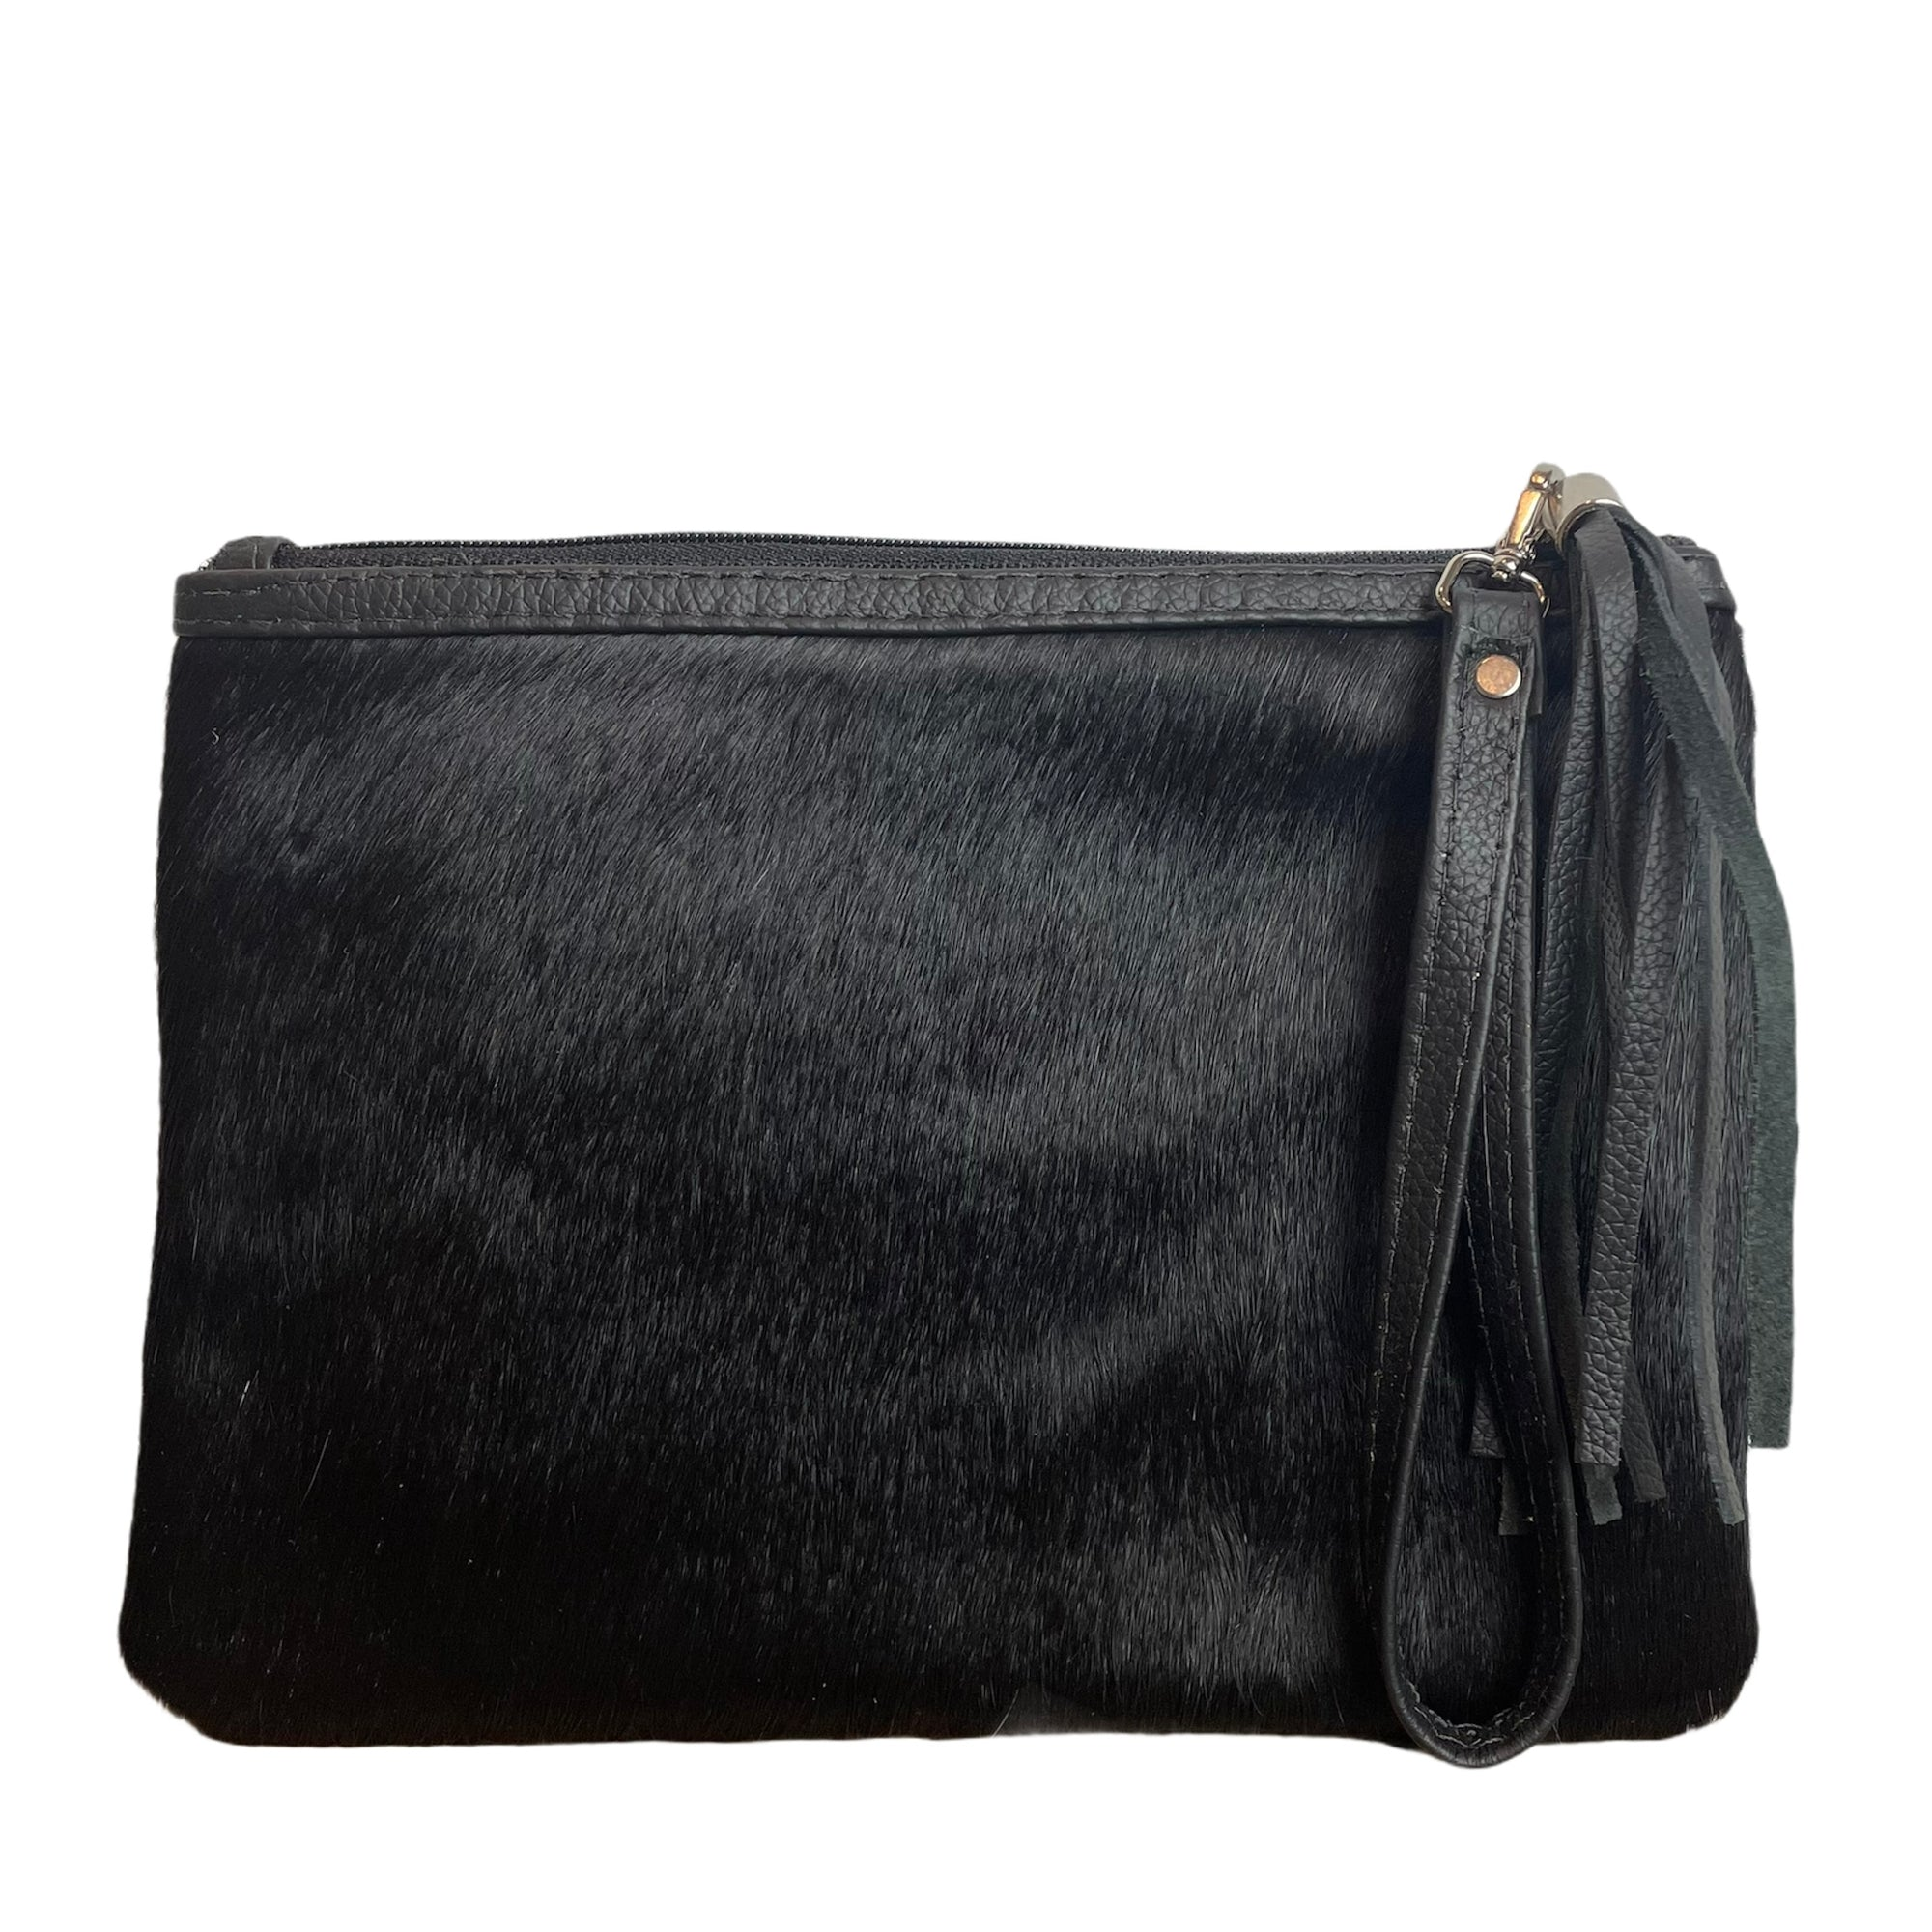 COWHIDE EVERYDAY SMALL CLUTCH - PURE BLACK. Izel Designs